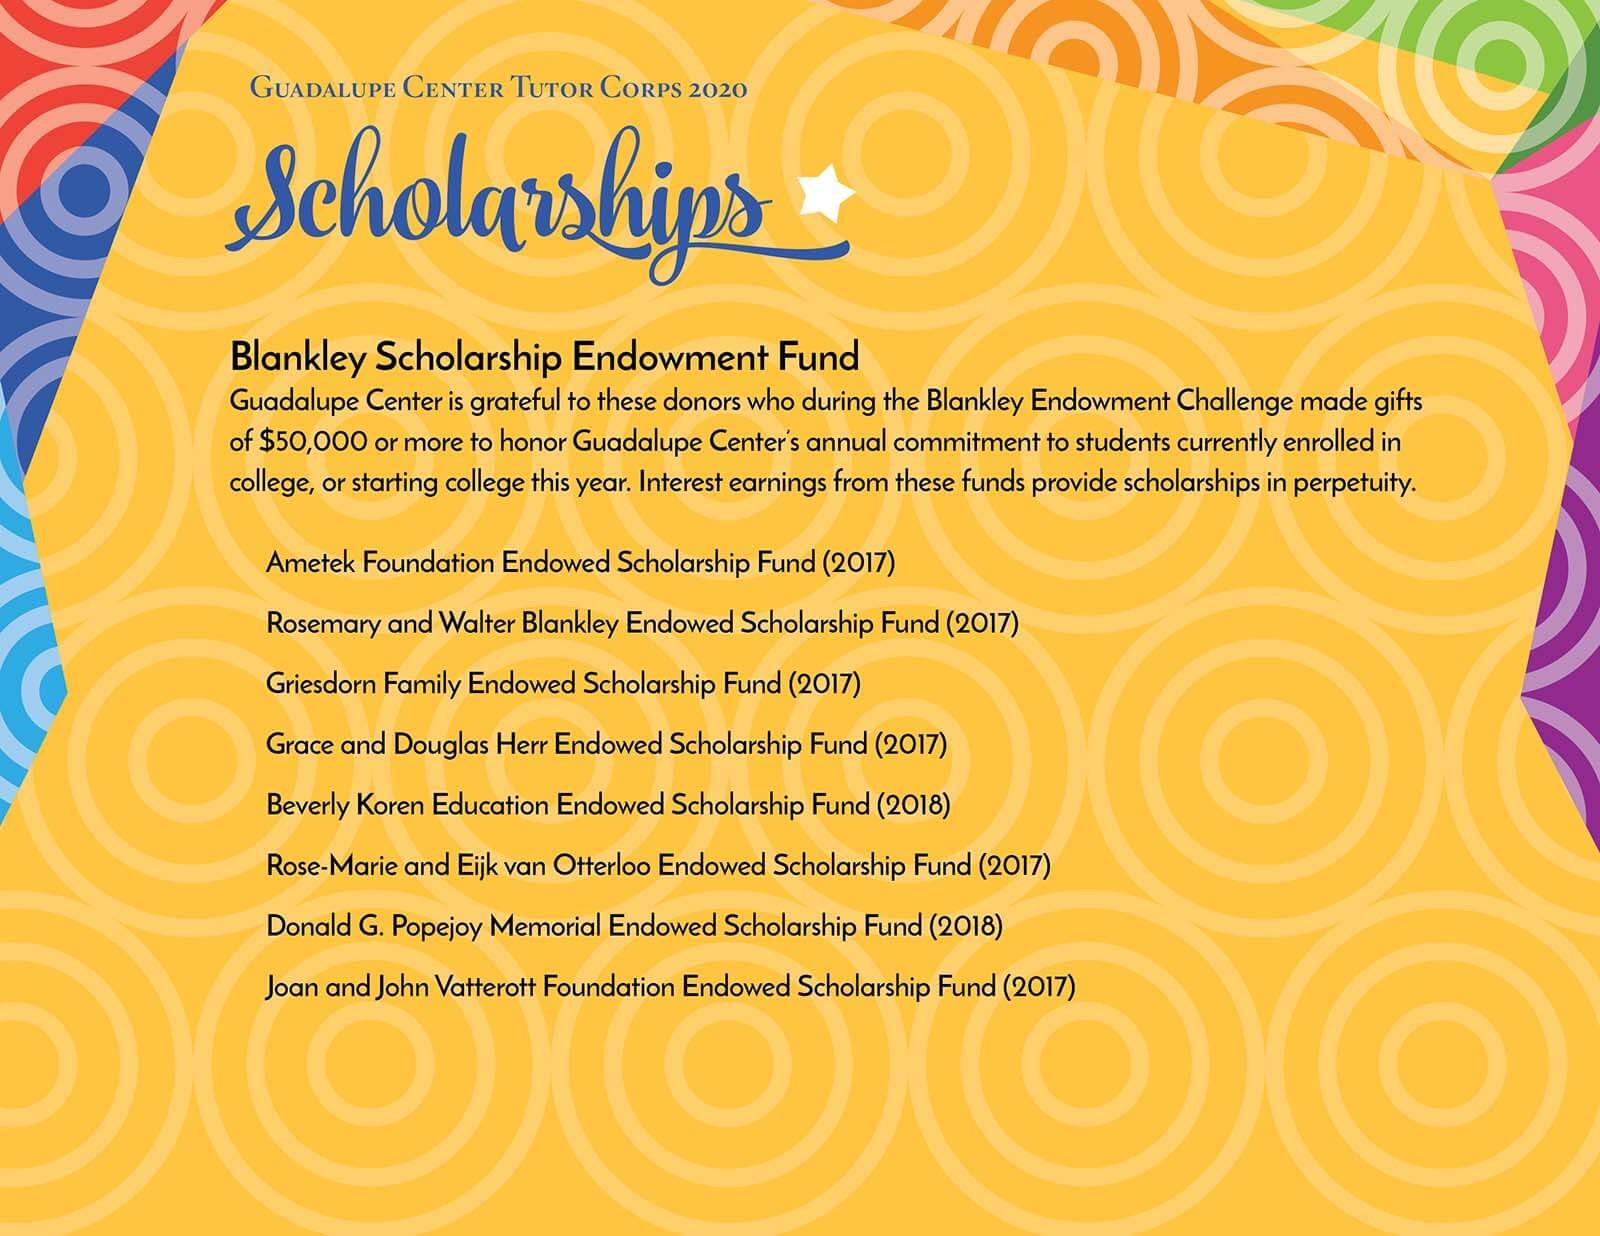 Guadalupe Center Tutors Corps Graduate Blankley Scholarship Awards